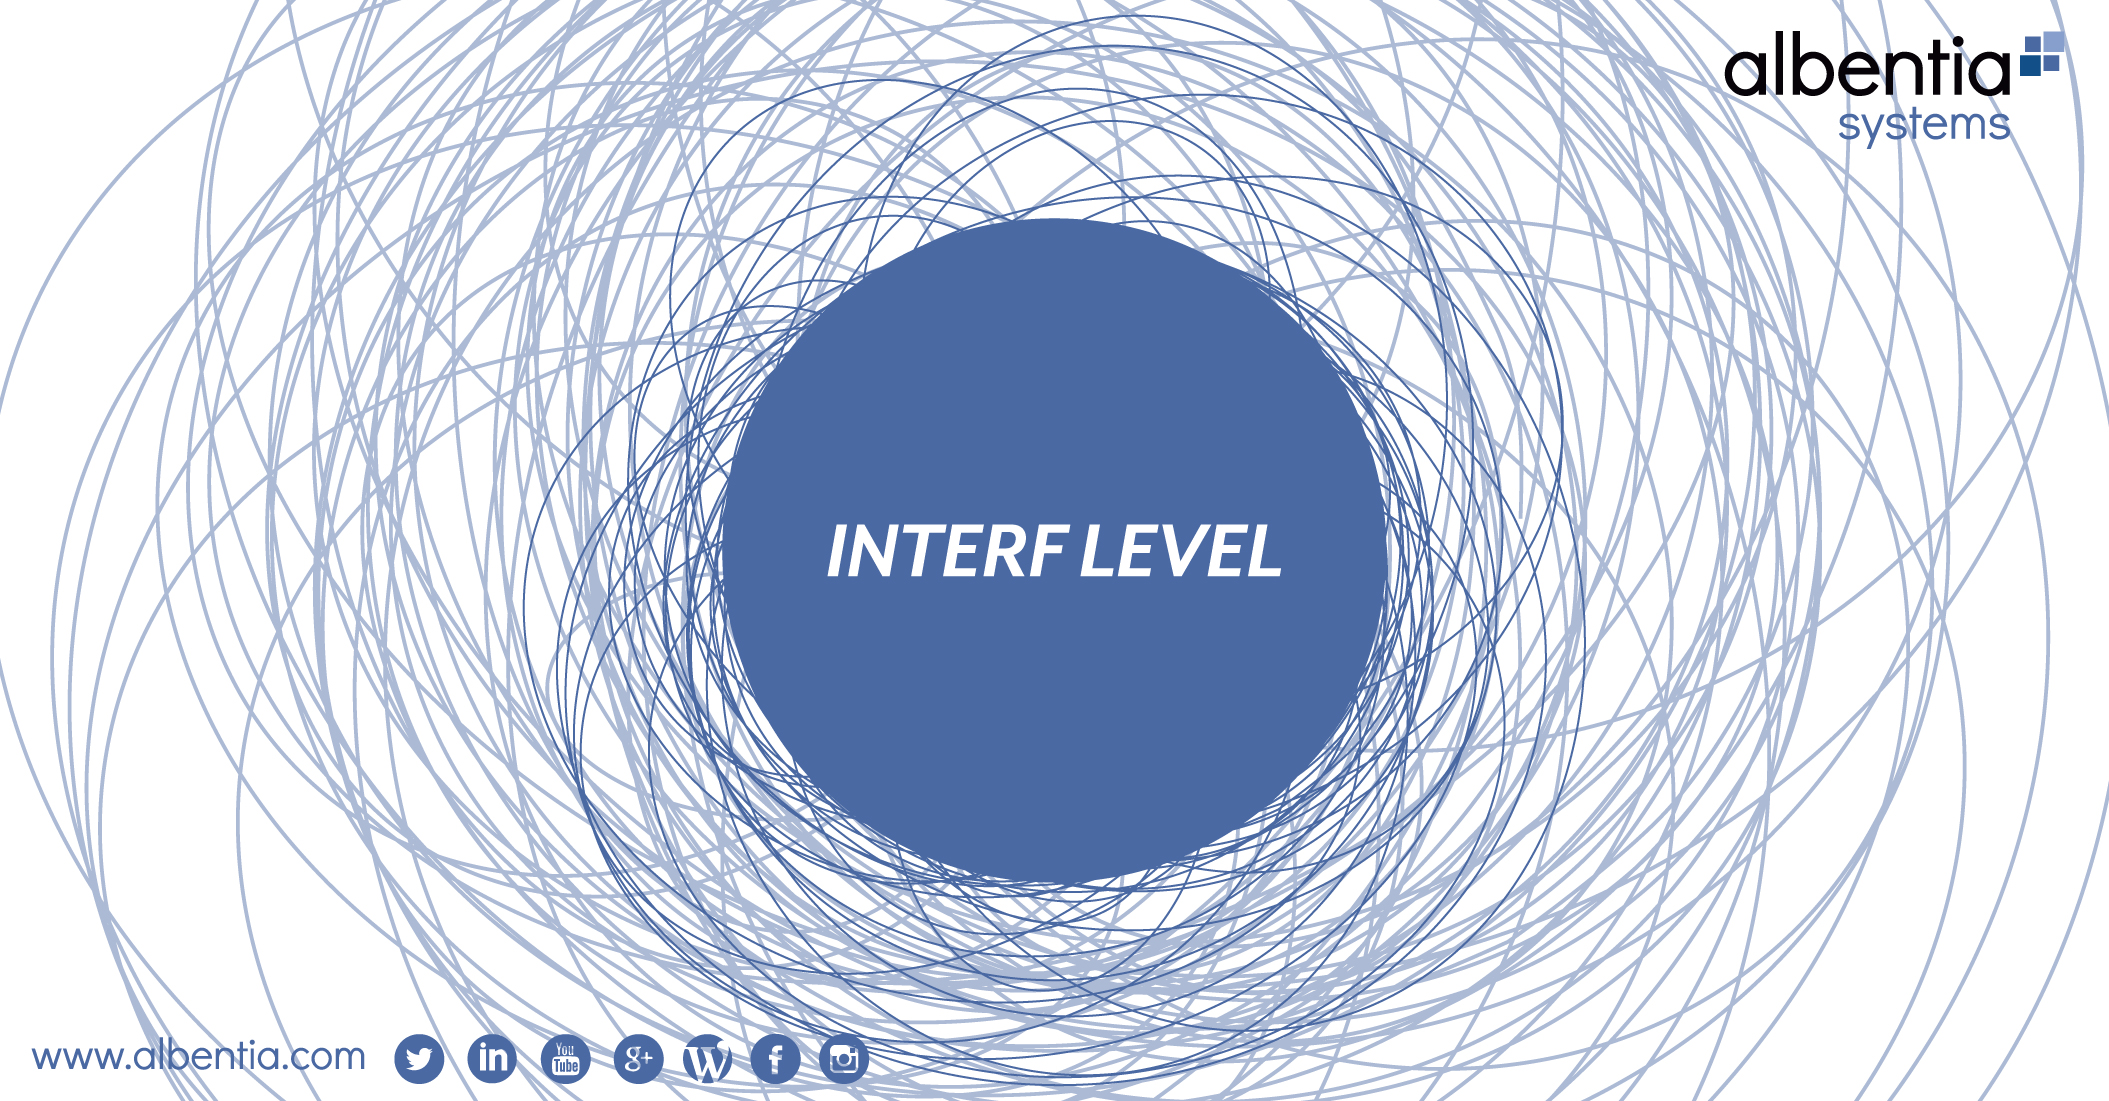 INTERF-LEVEL_TW logo color copia 2